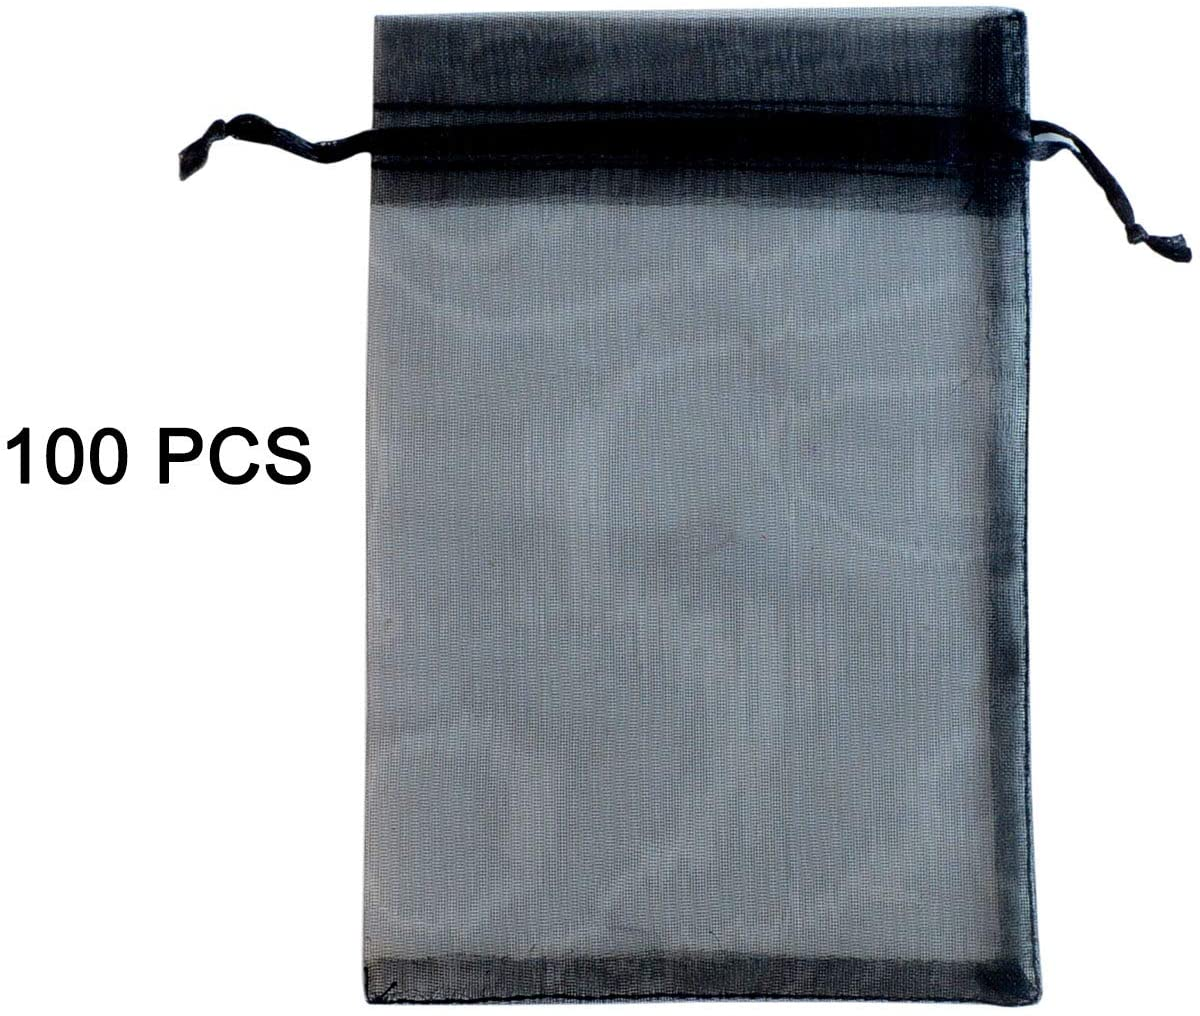 4 x 6Inches 100 Pack Black Organza Gift Bags Wedding Party Favor Bags Jewelry Pouches Wrap (100pcs Black 4 x 6 Inches)